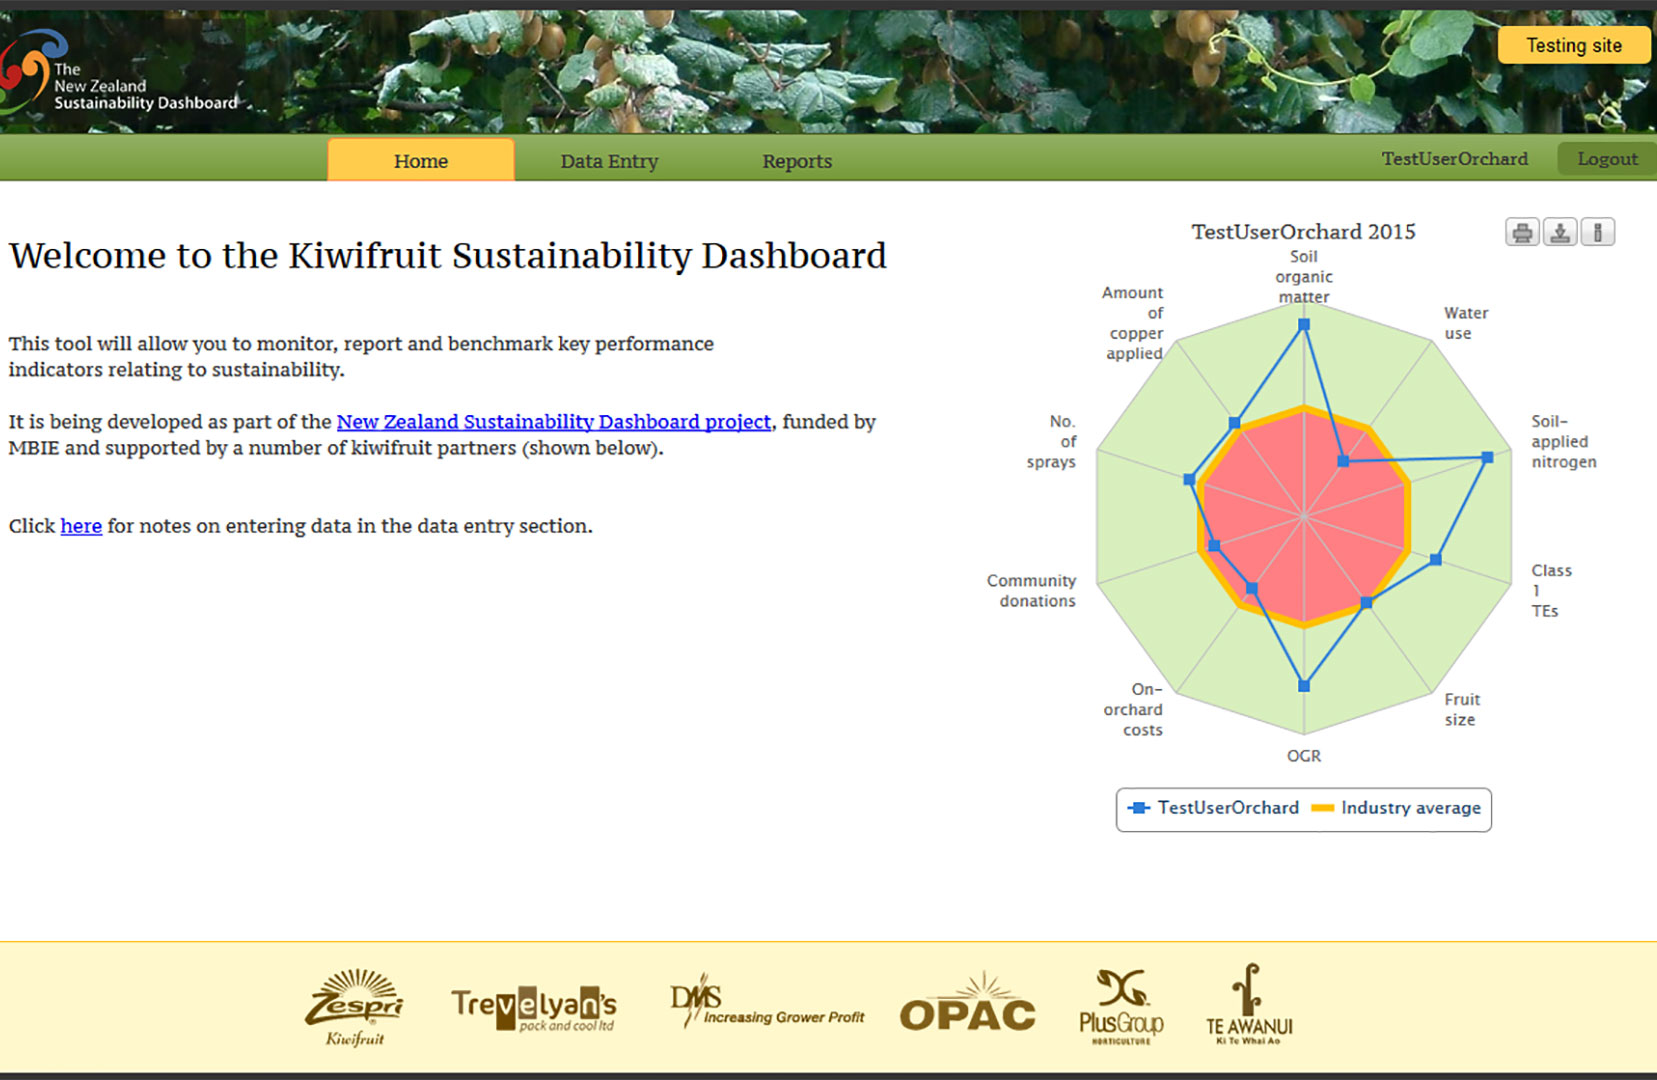 NZ Sustainability Dashboard